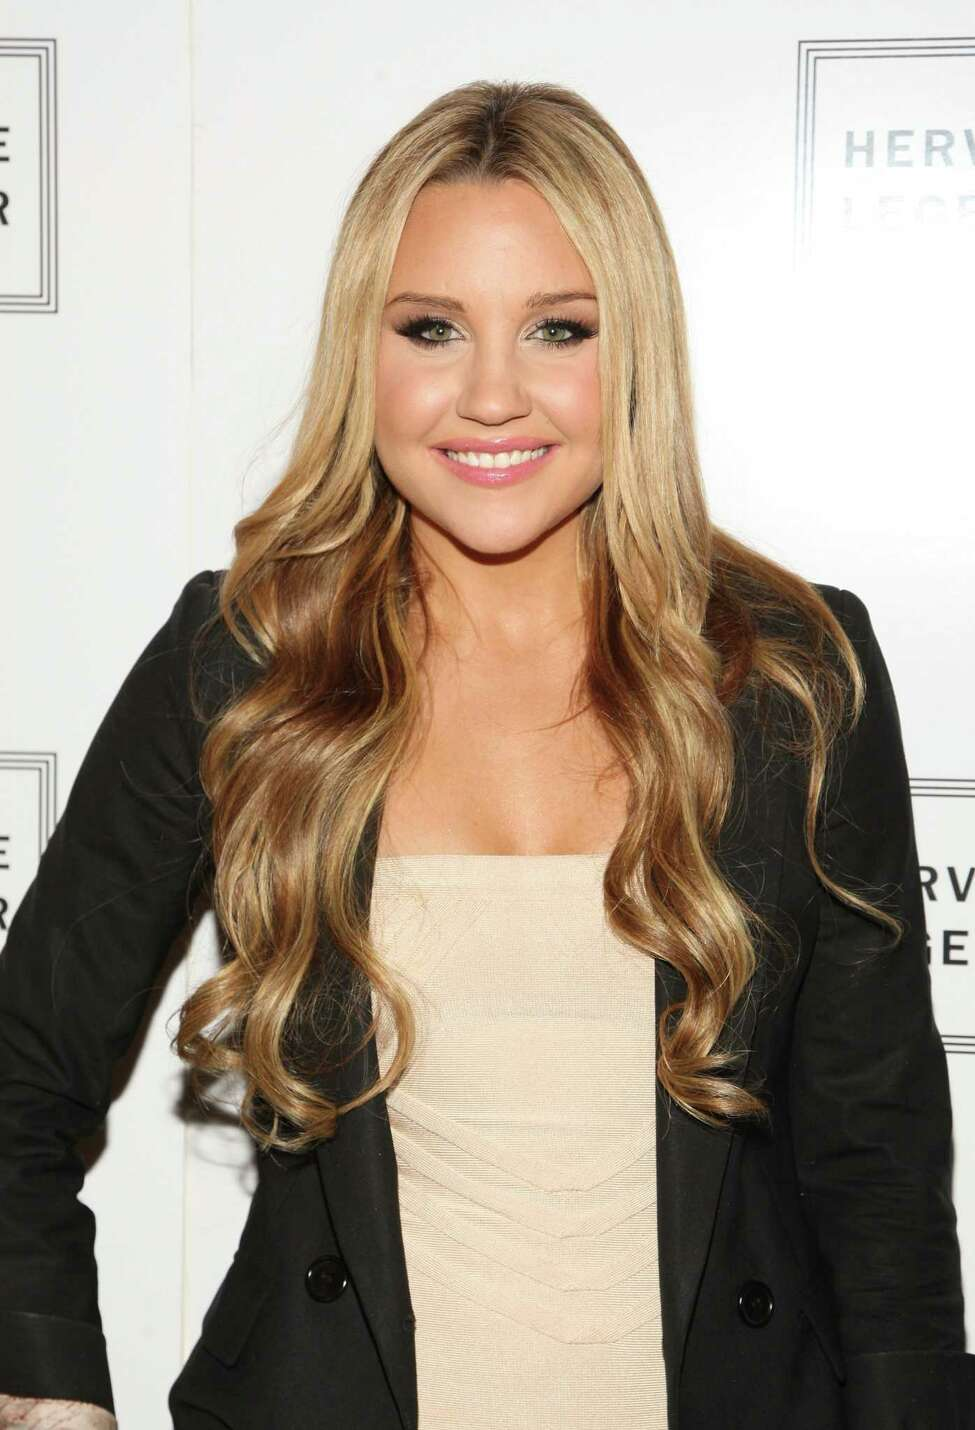 NEW YORK - SEPTEMBER 13: Actress Amanda Bynes attends the Herve Leger Spring 2010 Fashion Show at the Promenade at Bryant Park on September 13, 2009 in in New York City. (Photo by Bryan Bedder/Getty Images for Herve Leger)